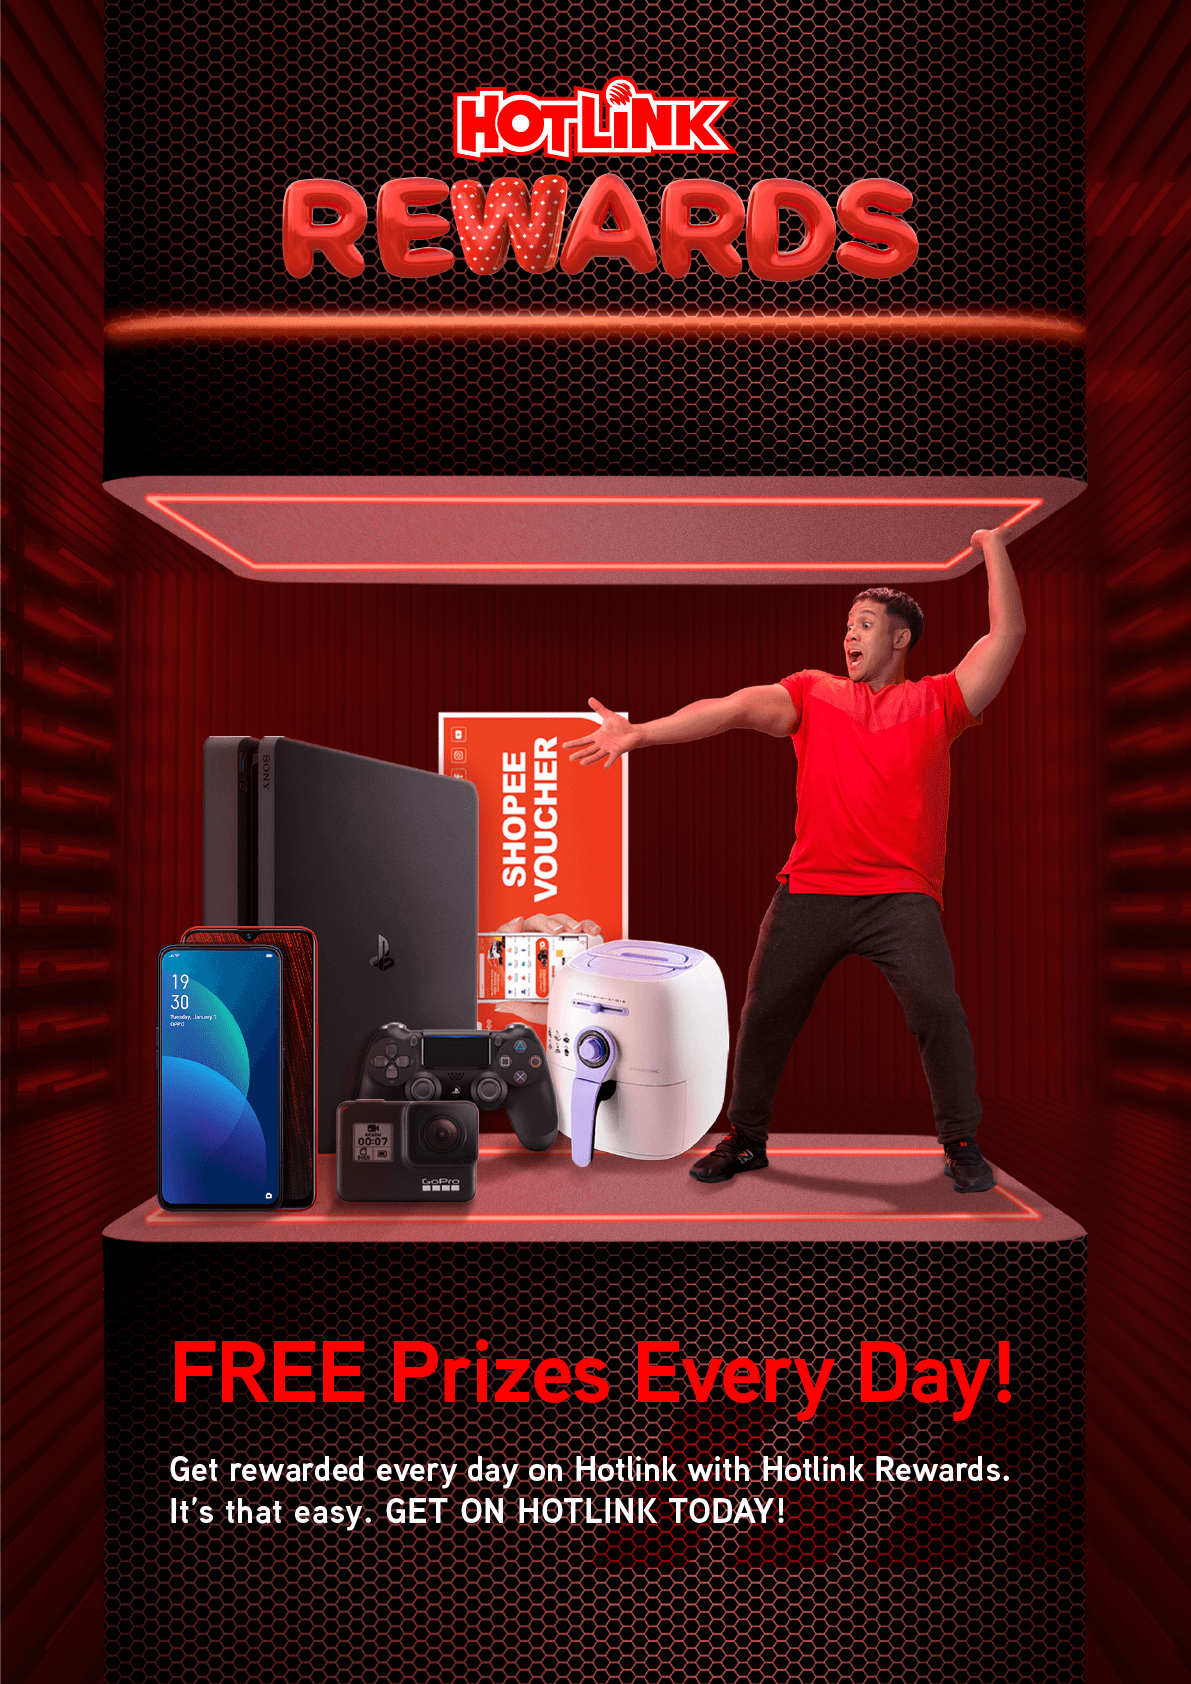 Hotlink Rewards, Free Prizes Every Day